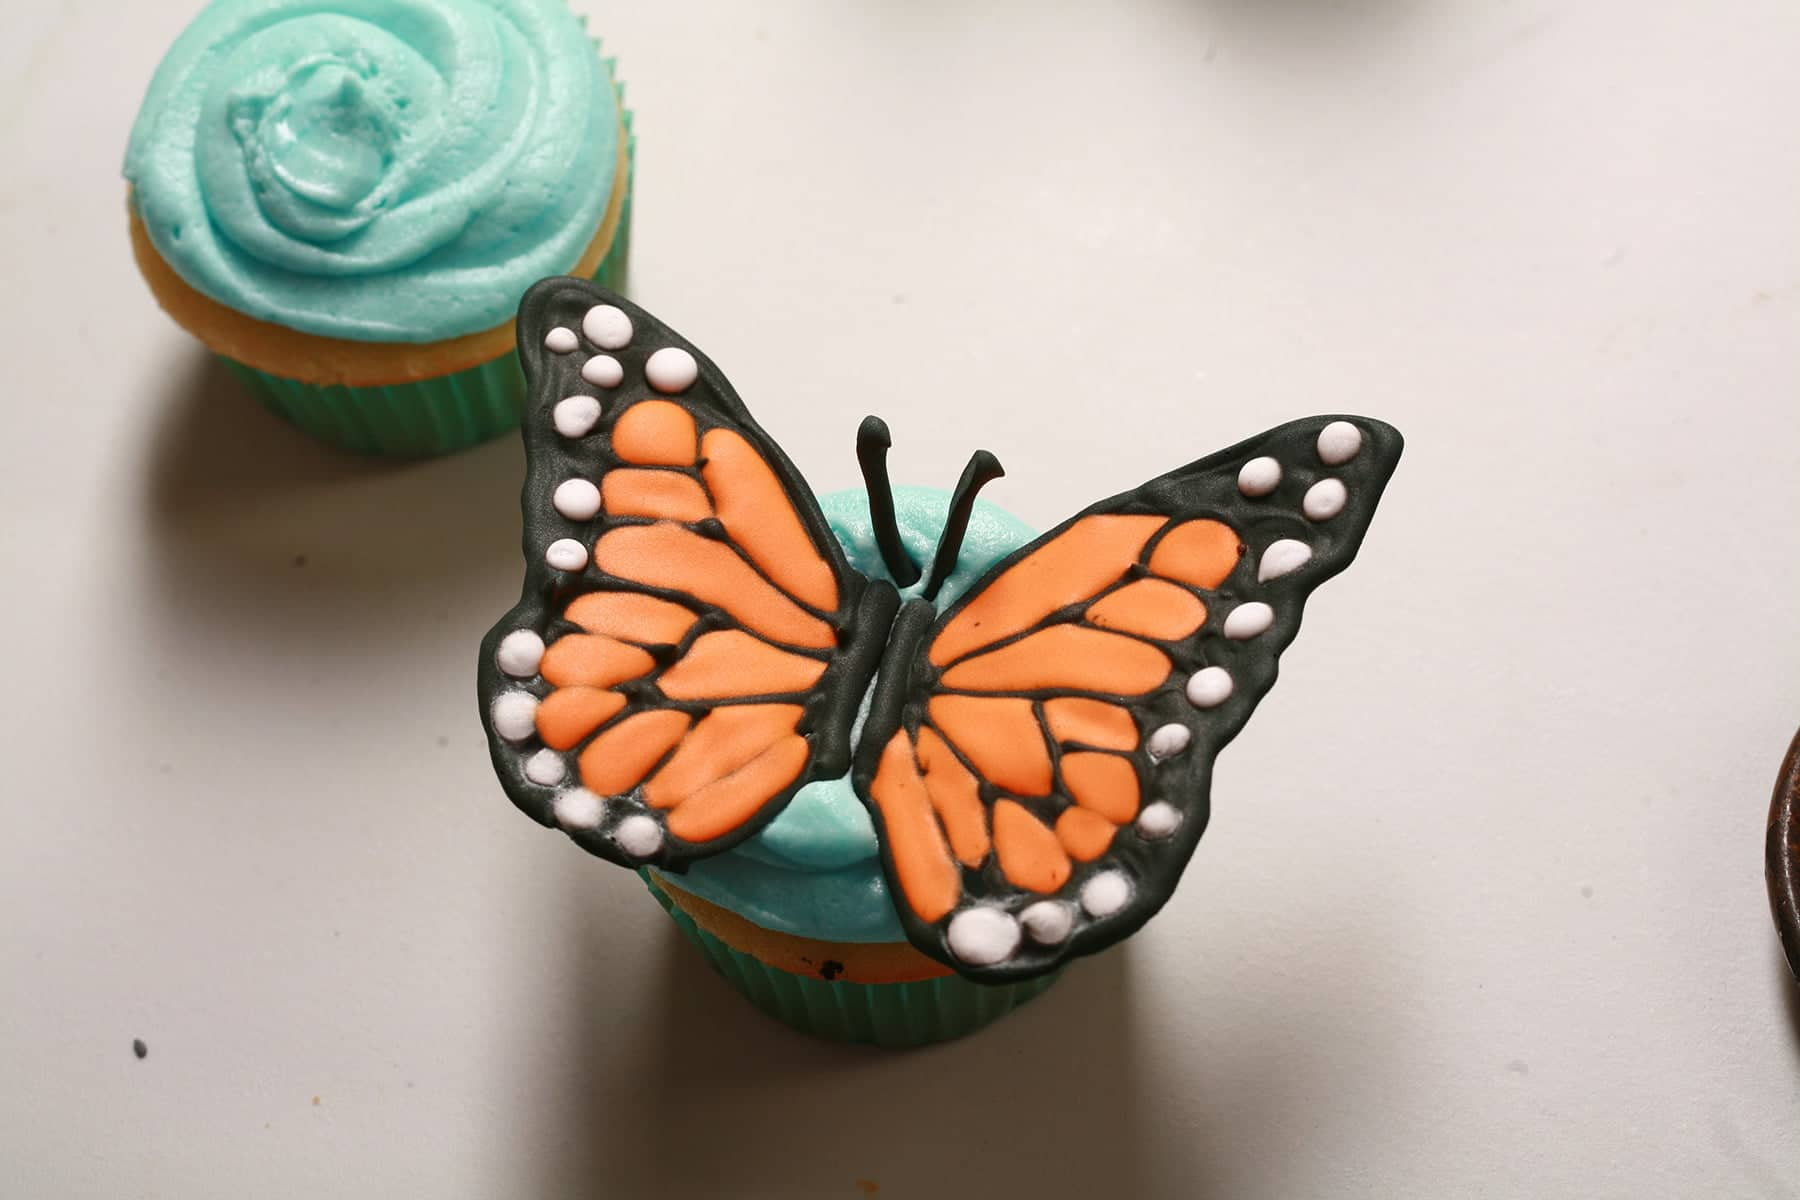 Two cupcakes frosted with sky blue icing. One has a set of frosting monarch butterfly wings on top of it.